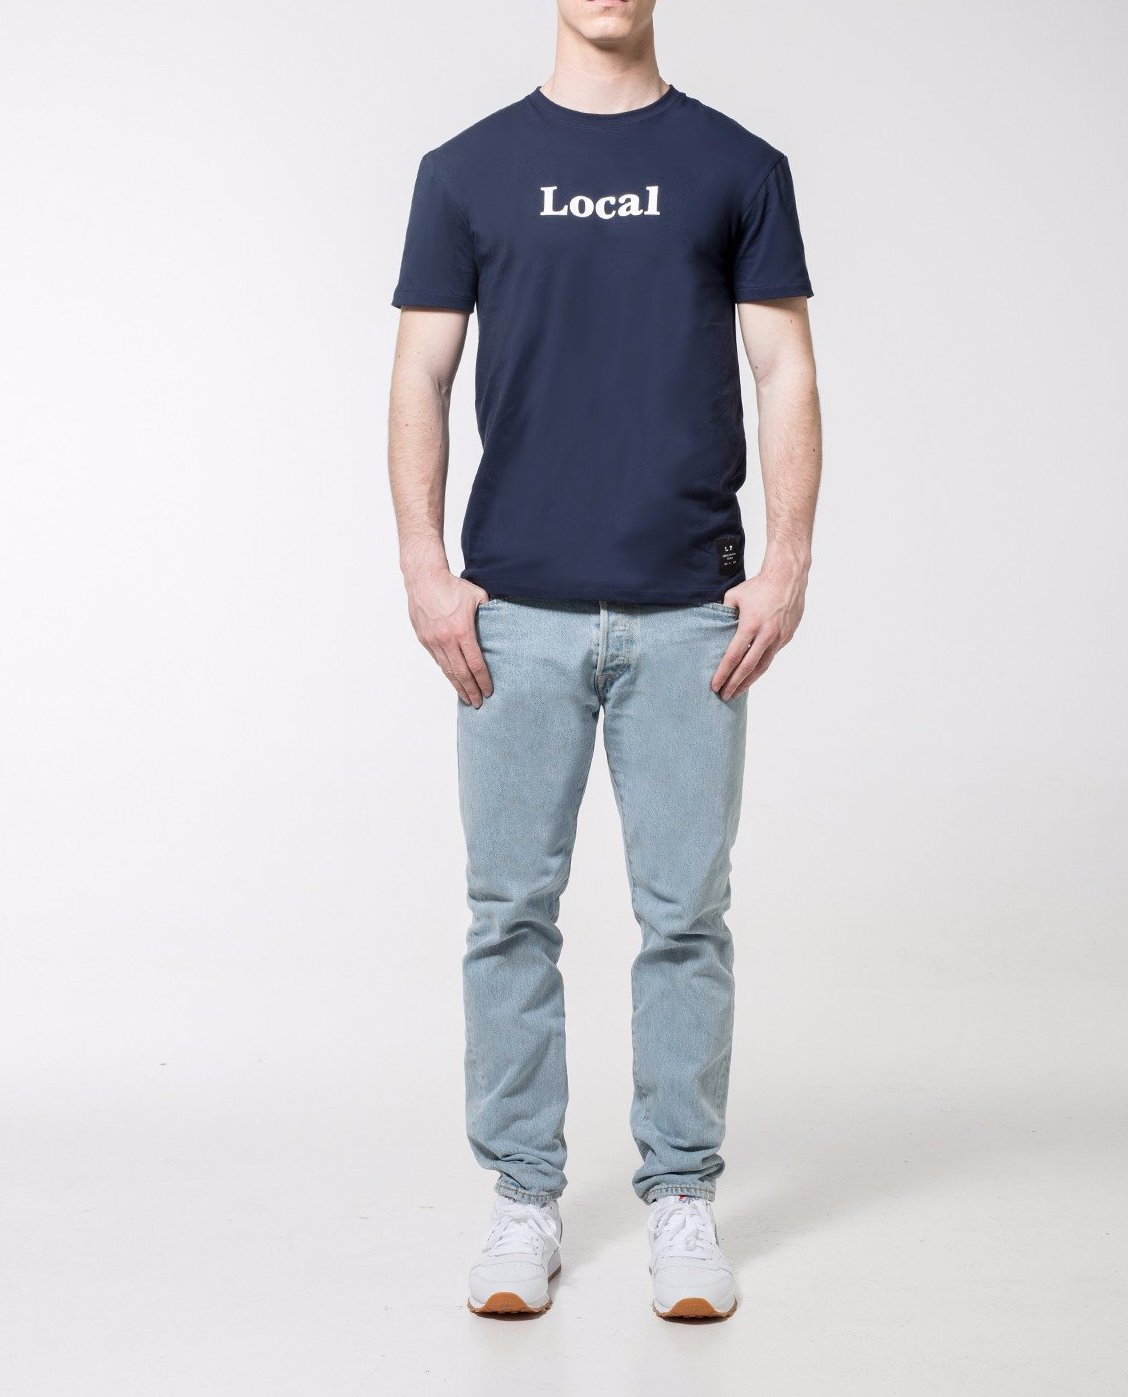 Local Tee - Local Pattern